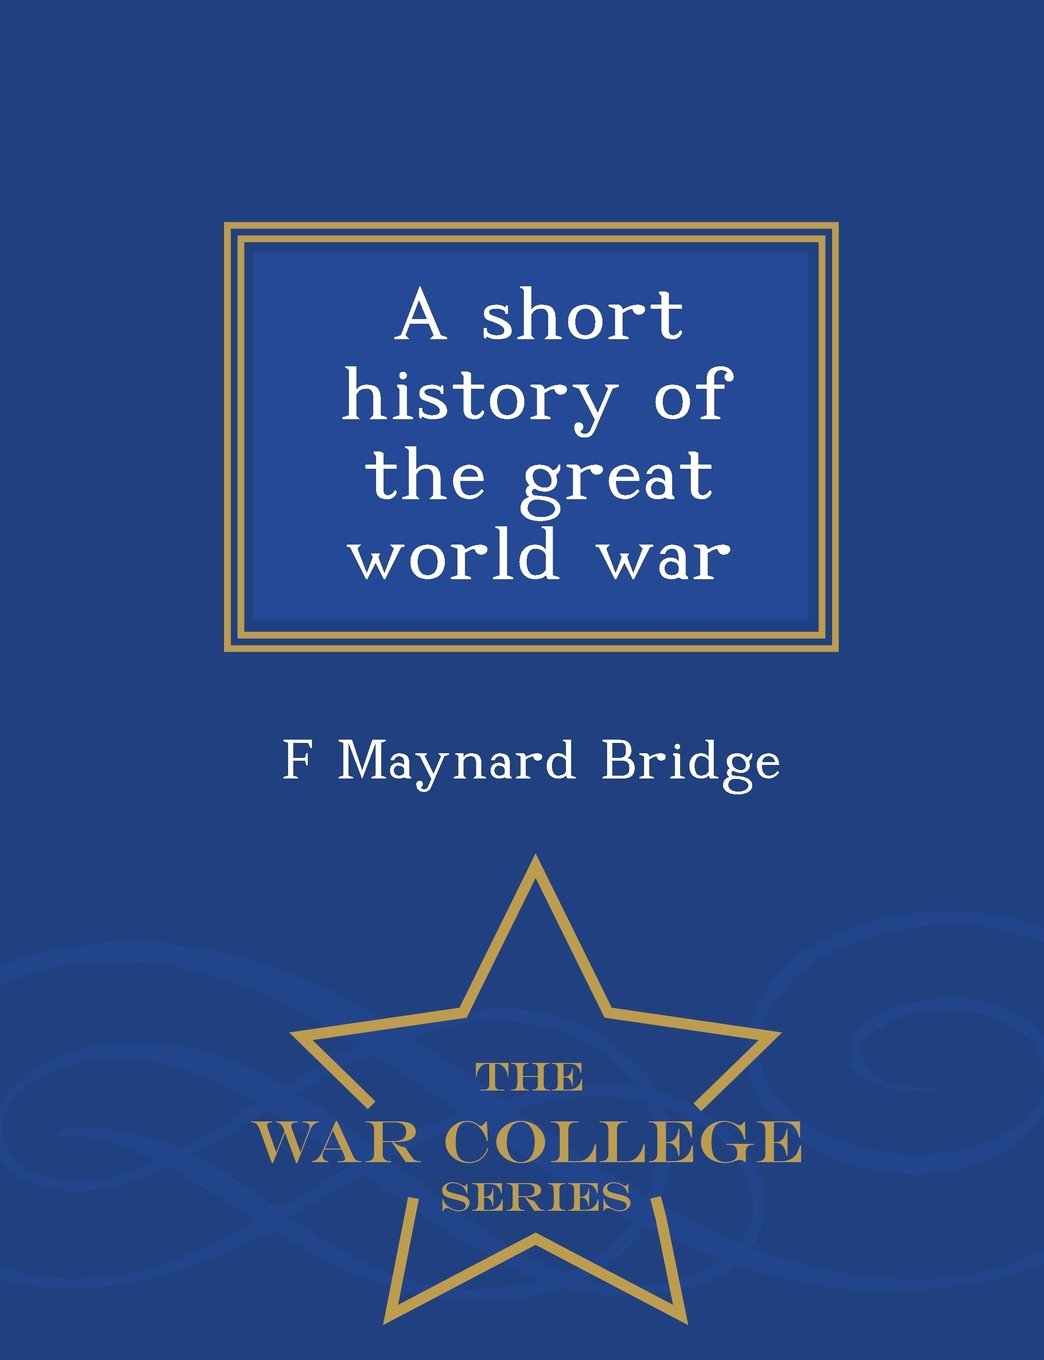 Download A short history of the great world war  - War College Series ebook